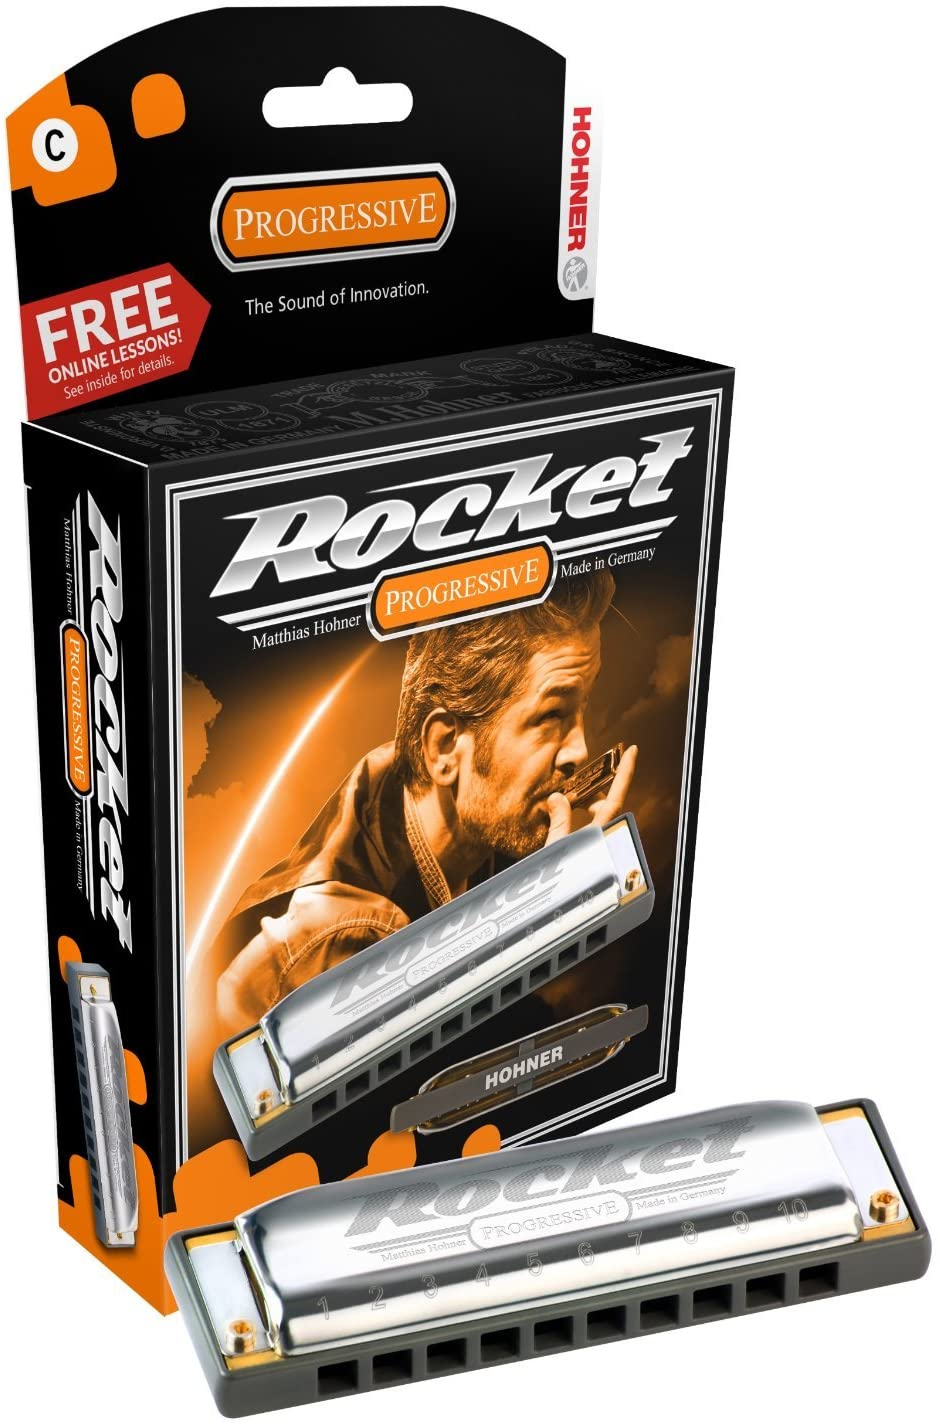 ARMONICA BLUES - Hohner (2013/20C) Rocket (Nota Do) (20 Voces) Progressive Series